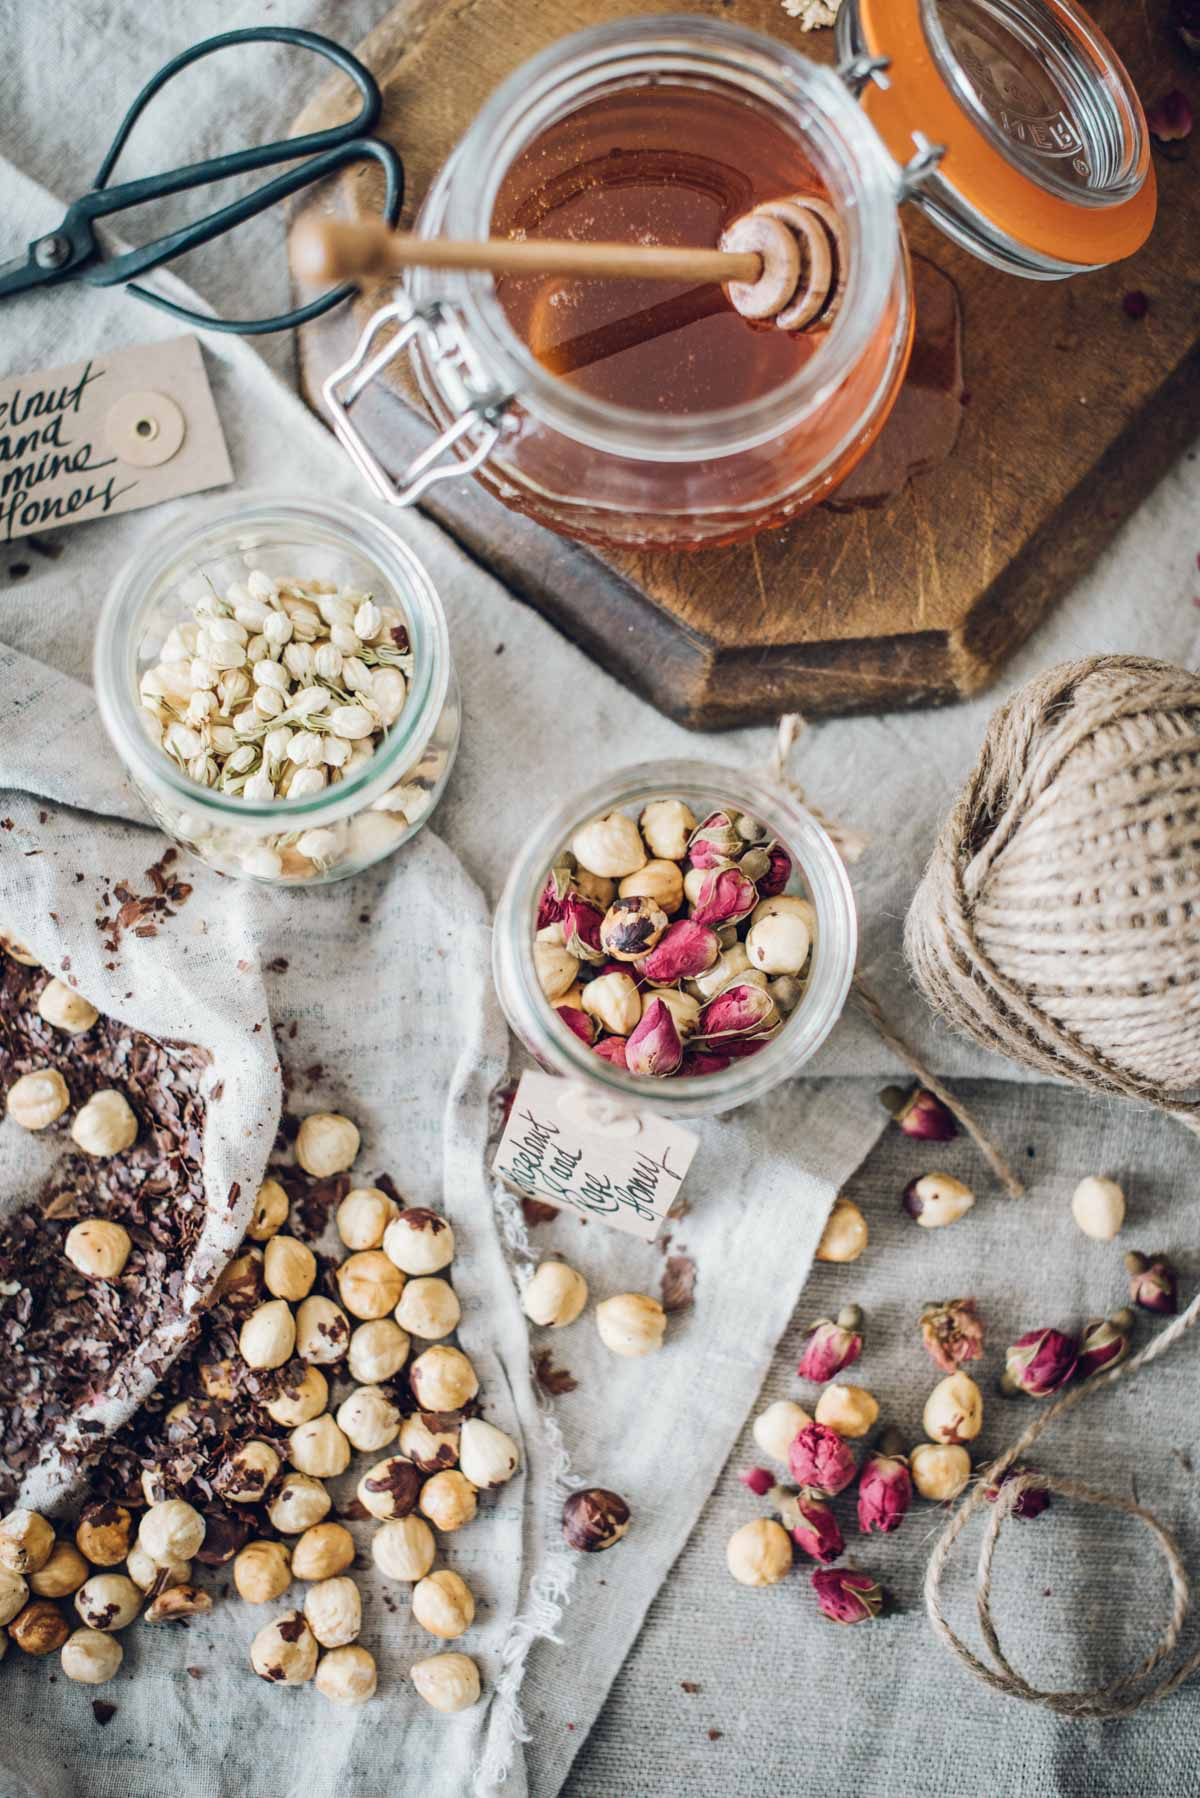 Hazelnut and Flower Honey | Chew Town Food Blog